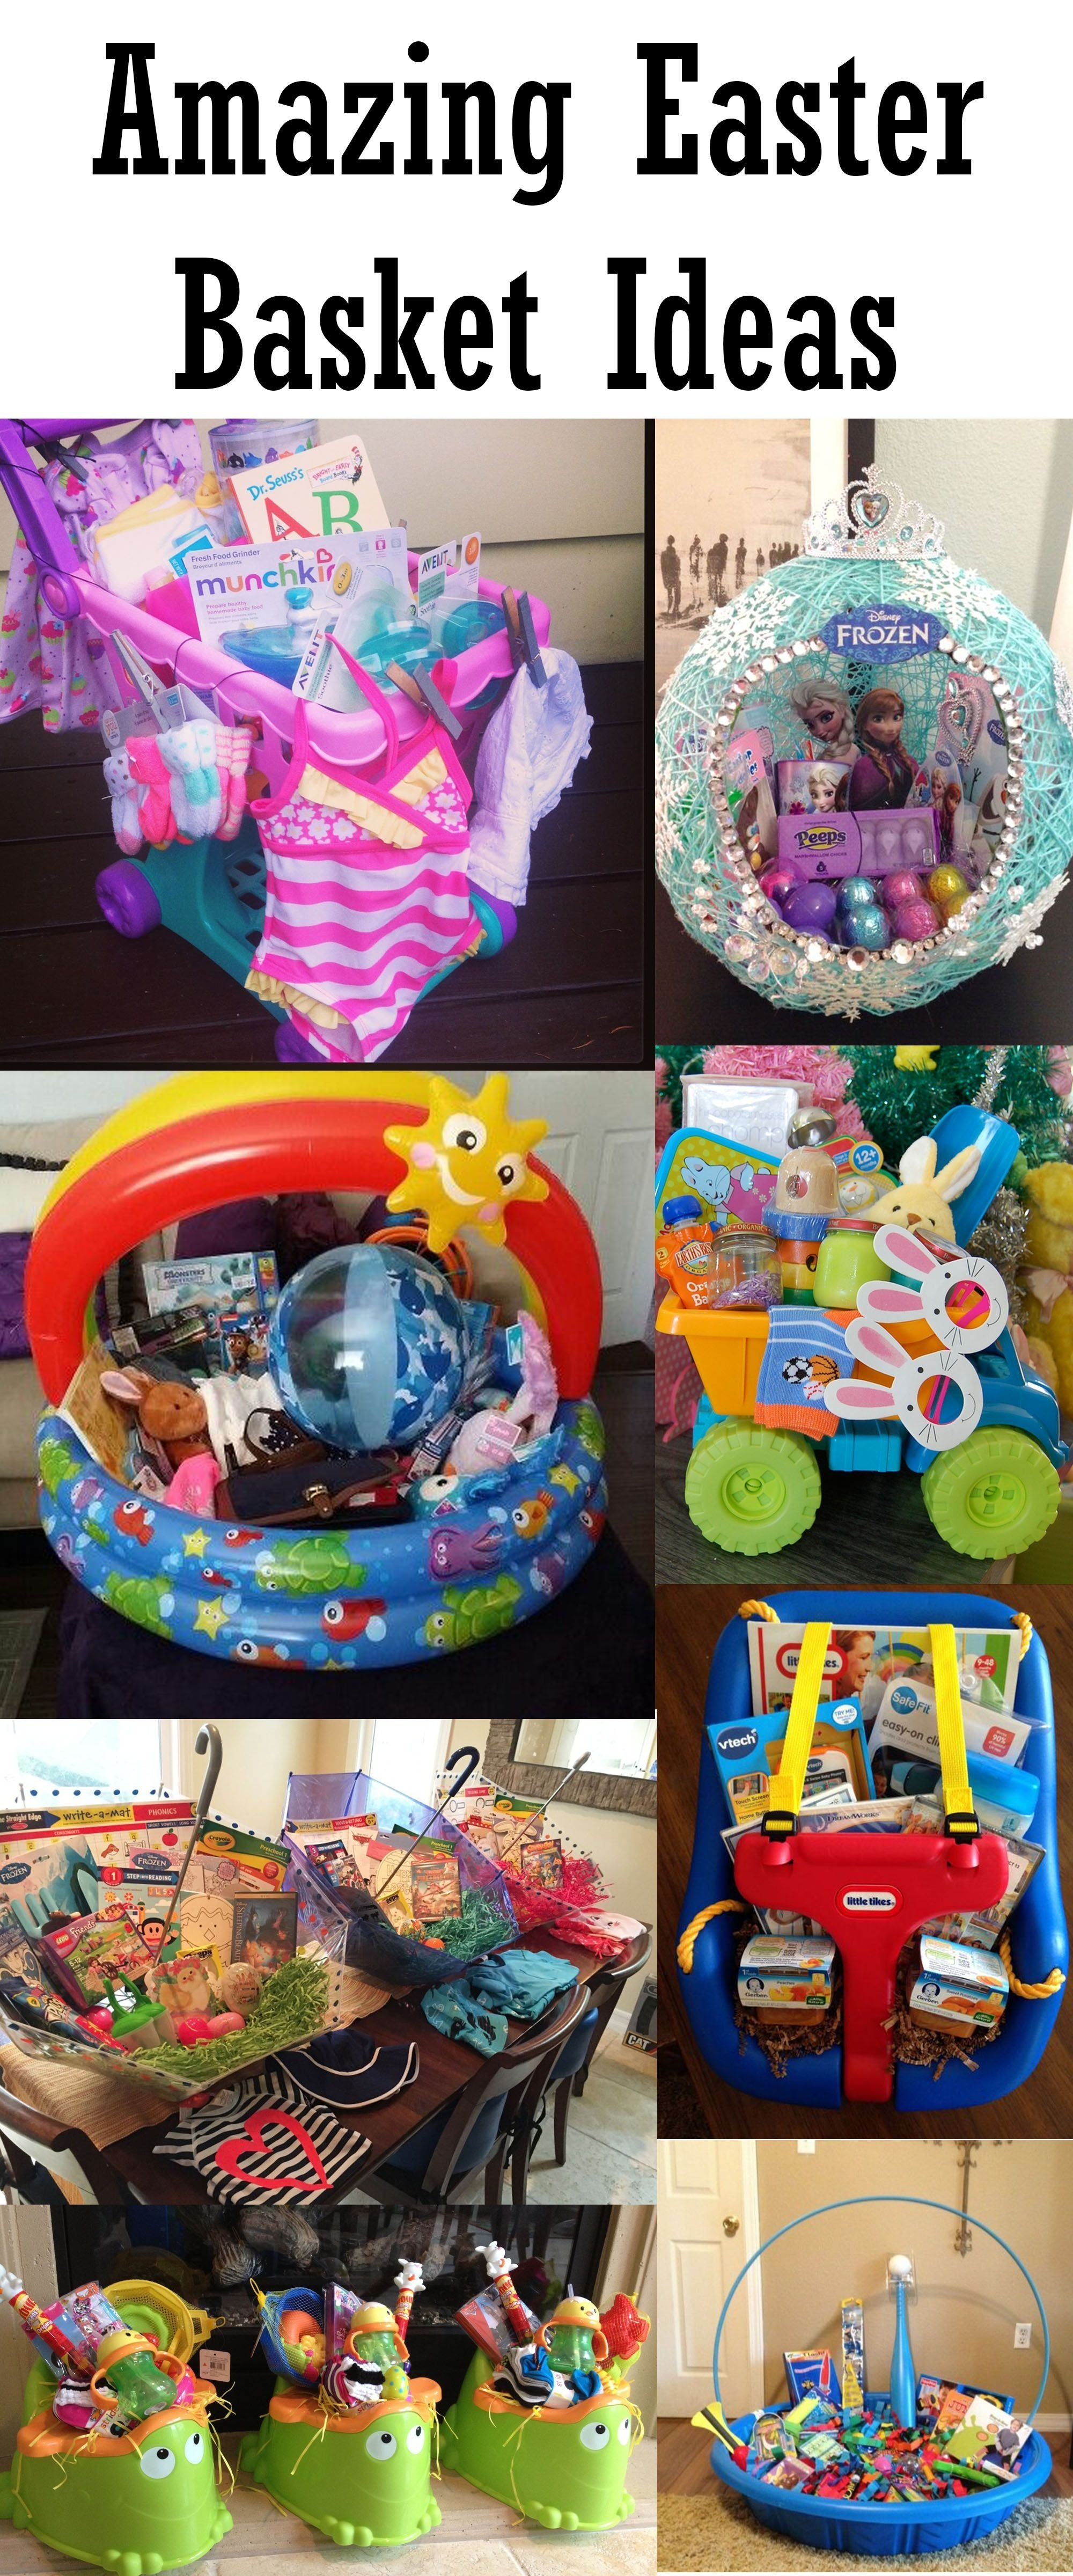 10 Fashionable Gift Basket Ideas For Kids amazing easter basket ideas basket ideas easter baskets and easter 5